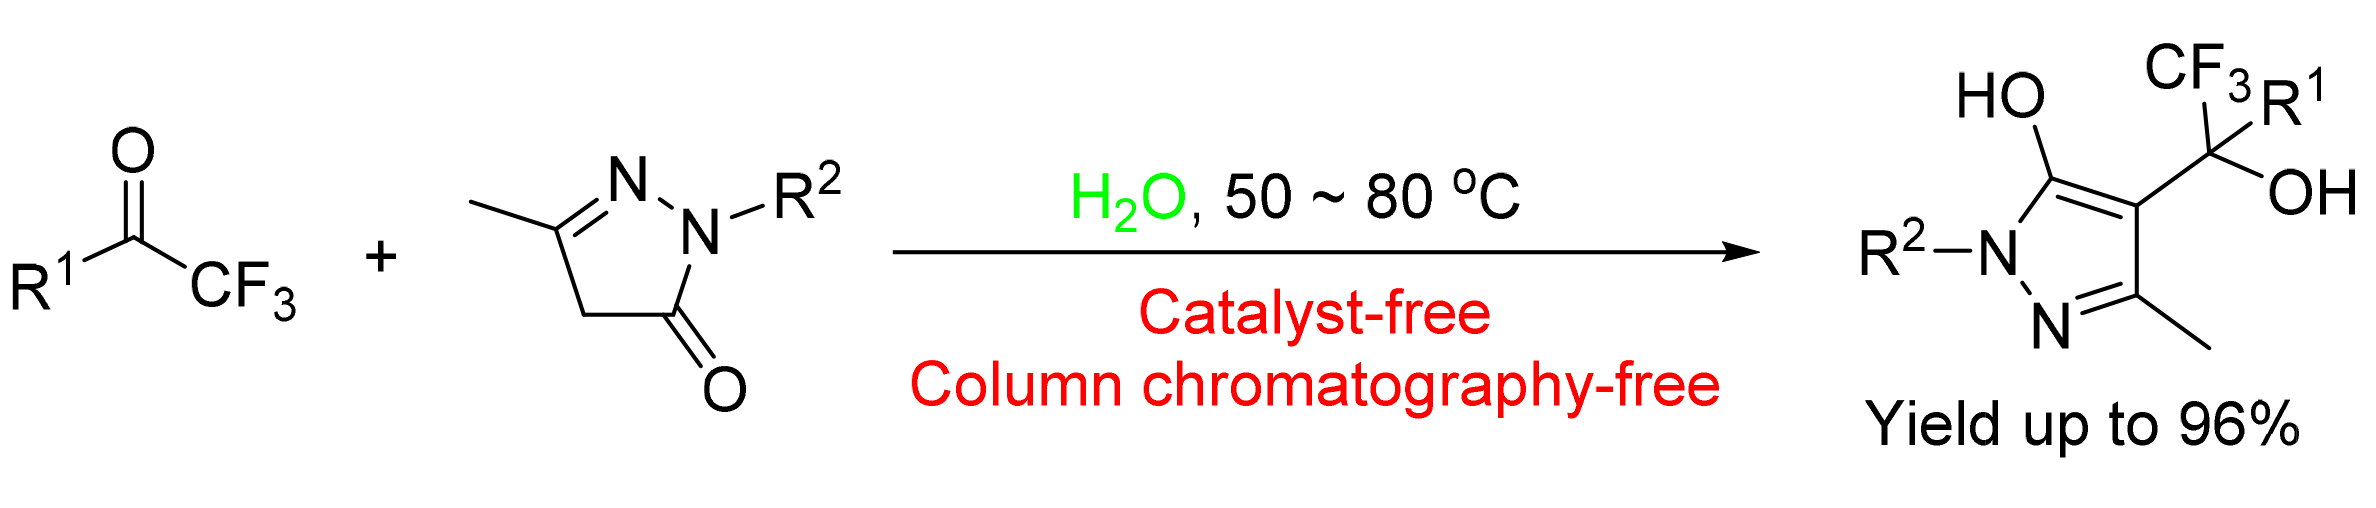 """On water"" Nucleophilic Addition of Pyrazolones to Trifluoromethyl Ketones"